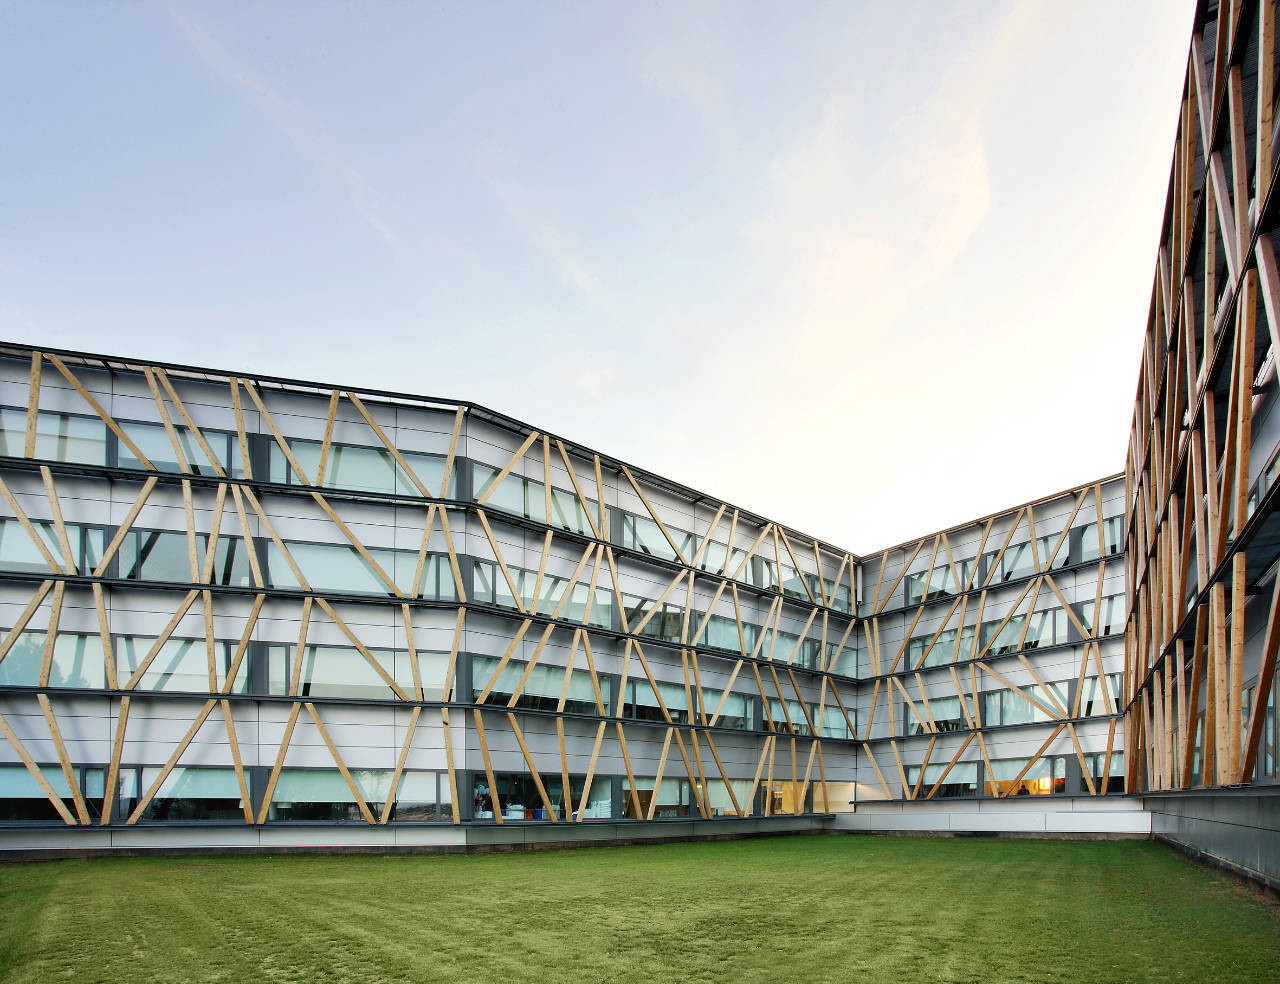 Telefonica Corporate University In Parc de Bell-llo / ​ Batlle & Roig Architects, © José Hevia